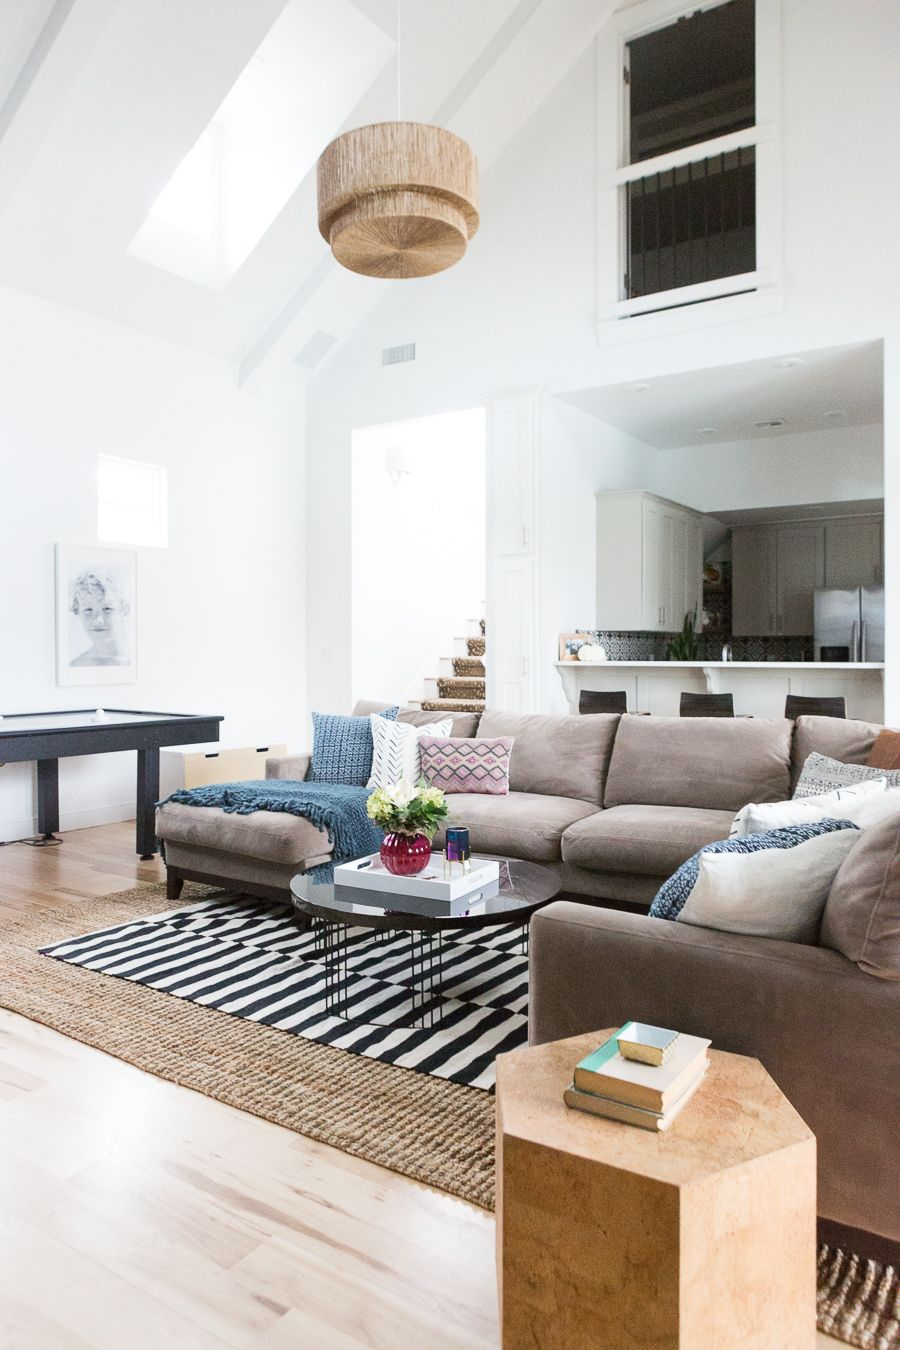 CC and Mike Gameroom Reveal   Juliette balcony, Large sectional and ...